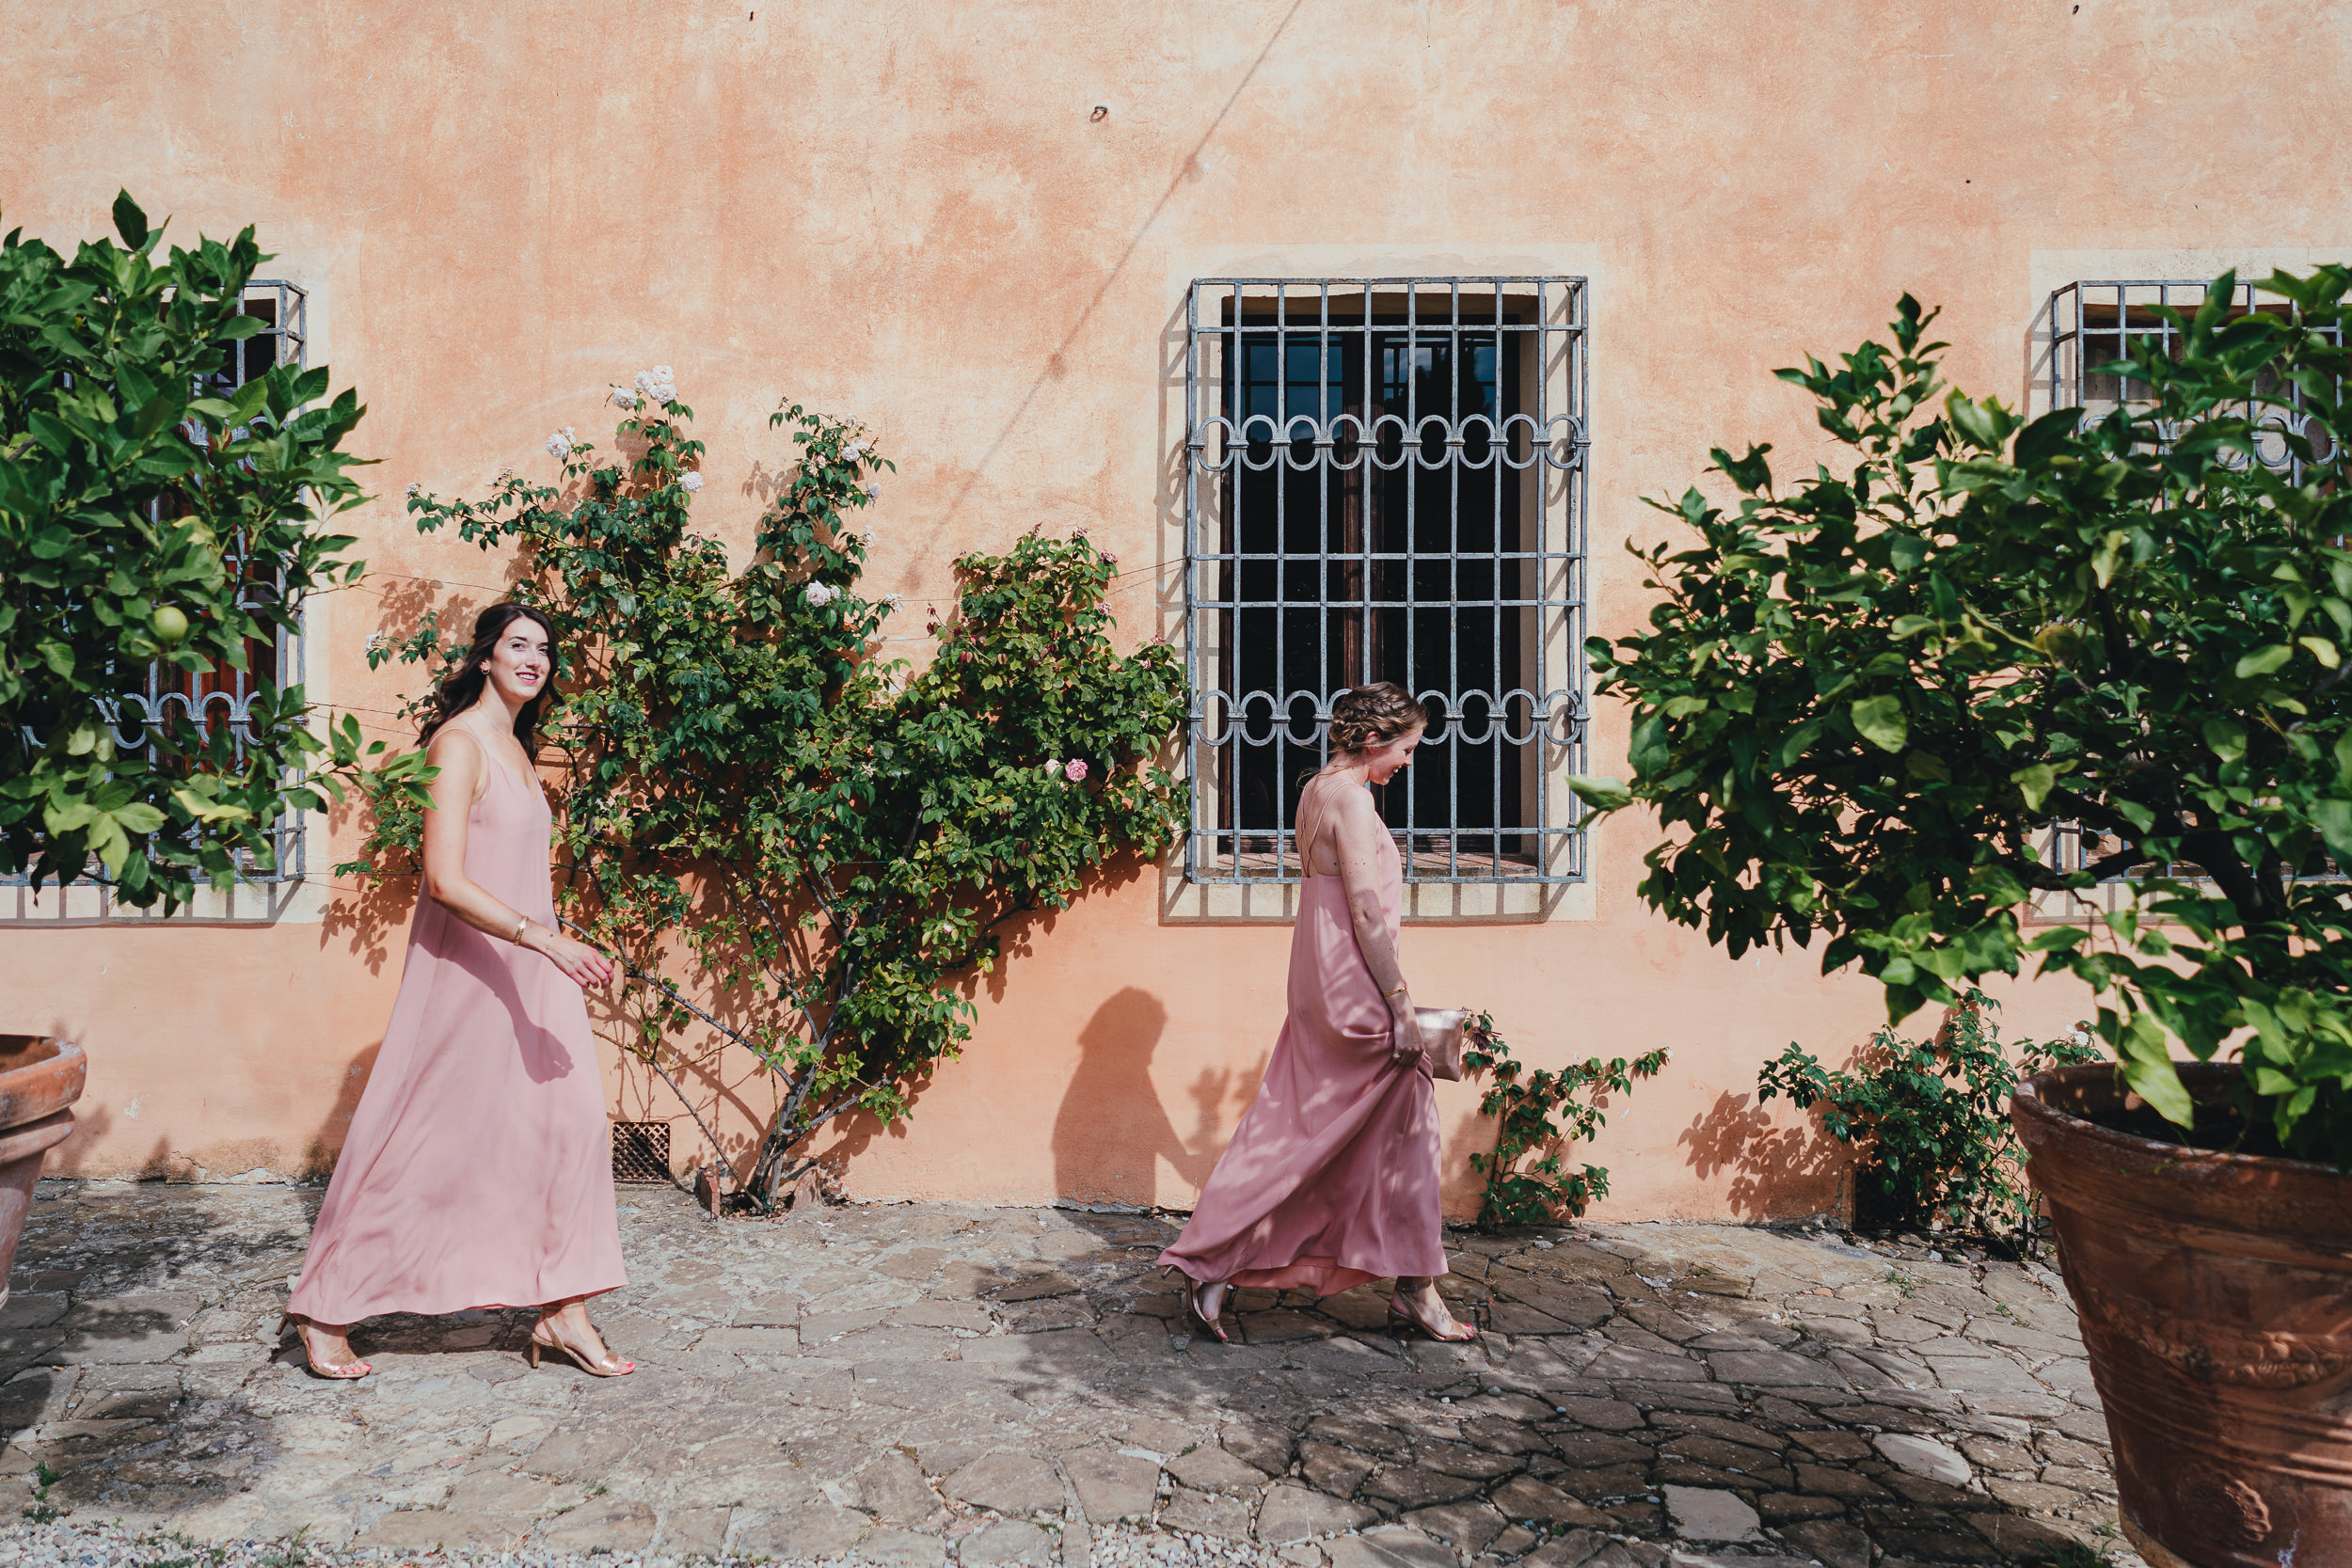 Tuscan Villa Wedding - The Bridesmaids walking around the villa